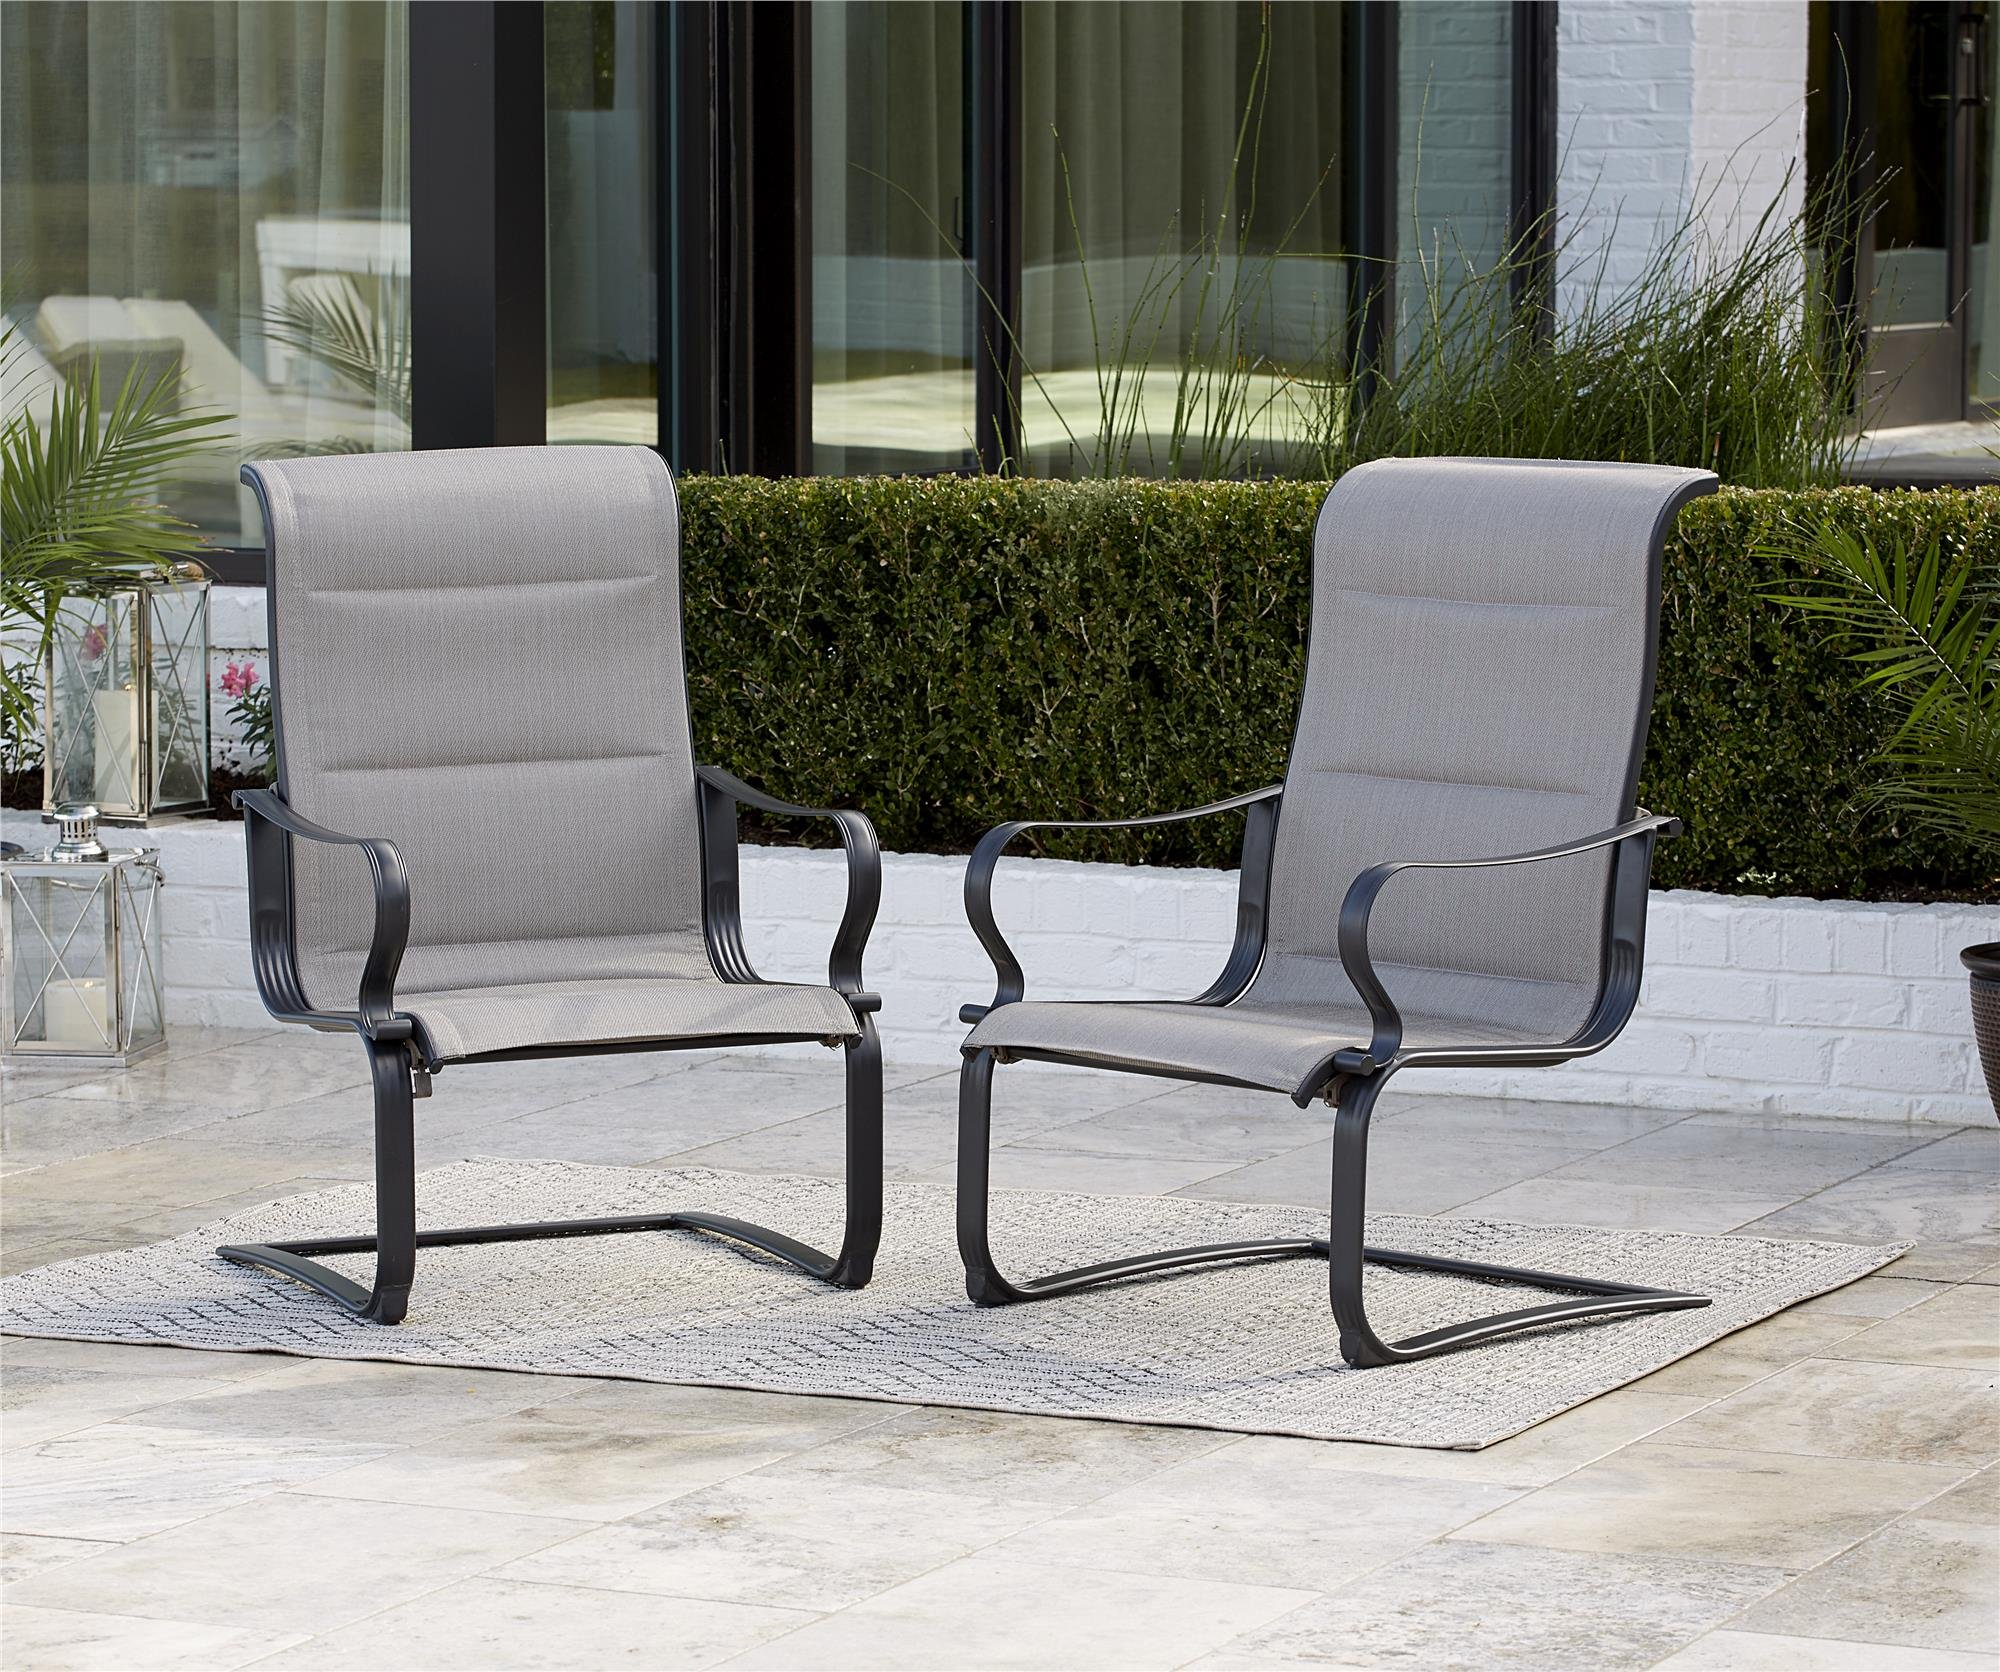 "Cosco Outdoor Patio Chairs, SmartConnect, 2 Pack, Gray Beige - Cosco's SmartConnect outdoor furniture collection features easy, tool-free assembly, from carton to comfort in minutes! Stylish outdoor furniture set has a durable, weather resistant outdoor powder coated steel frame, chairs and loveseat have easy to clean all weather slings Dimensions are: Outdoor lounge chair 29.92"" L x 26.57"" D x 40.94"" H per chair, Loveseat 49.41"" L x 29.92"" D x 40.94"" H, Coffee table 39.96"" L x 19.69"" D x 15.75"" H - patio-furniture, patio-chairs, patio - 913XfUUNWQL -"